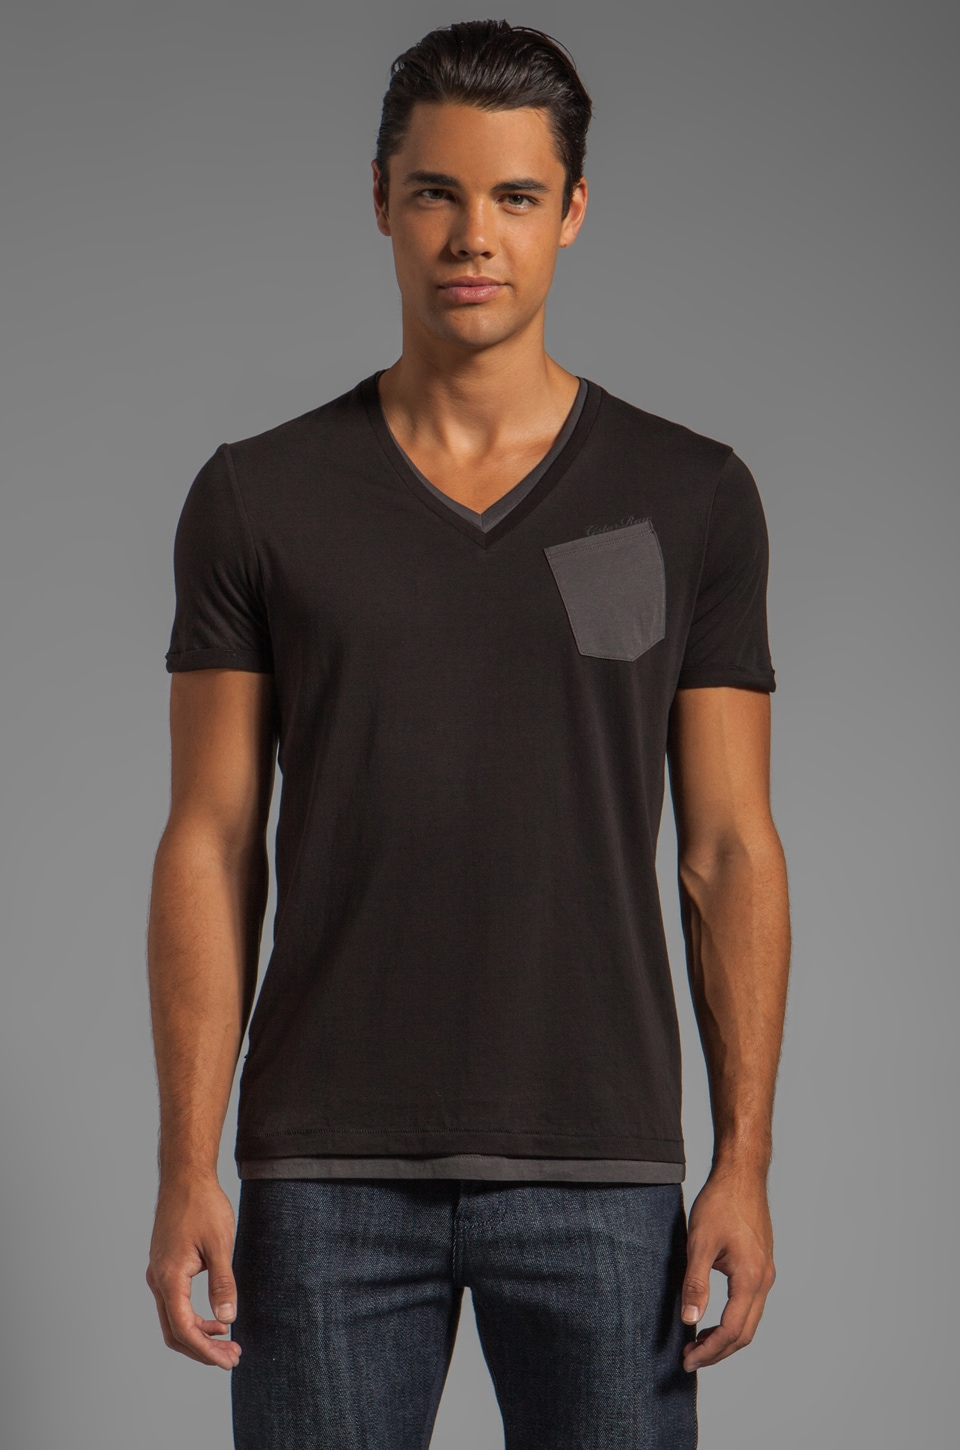 G-Star Spike Double V Tee in Black